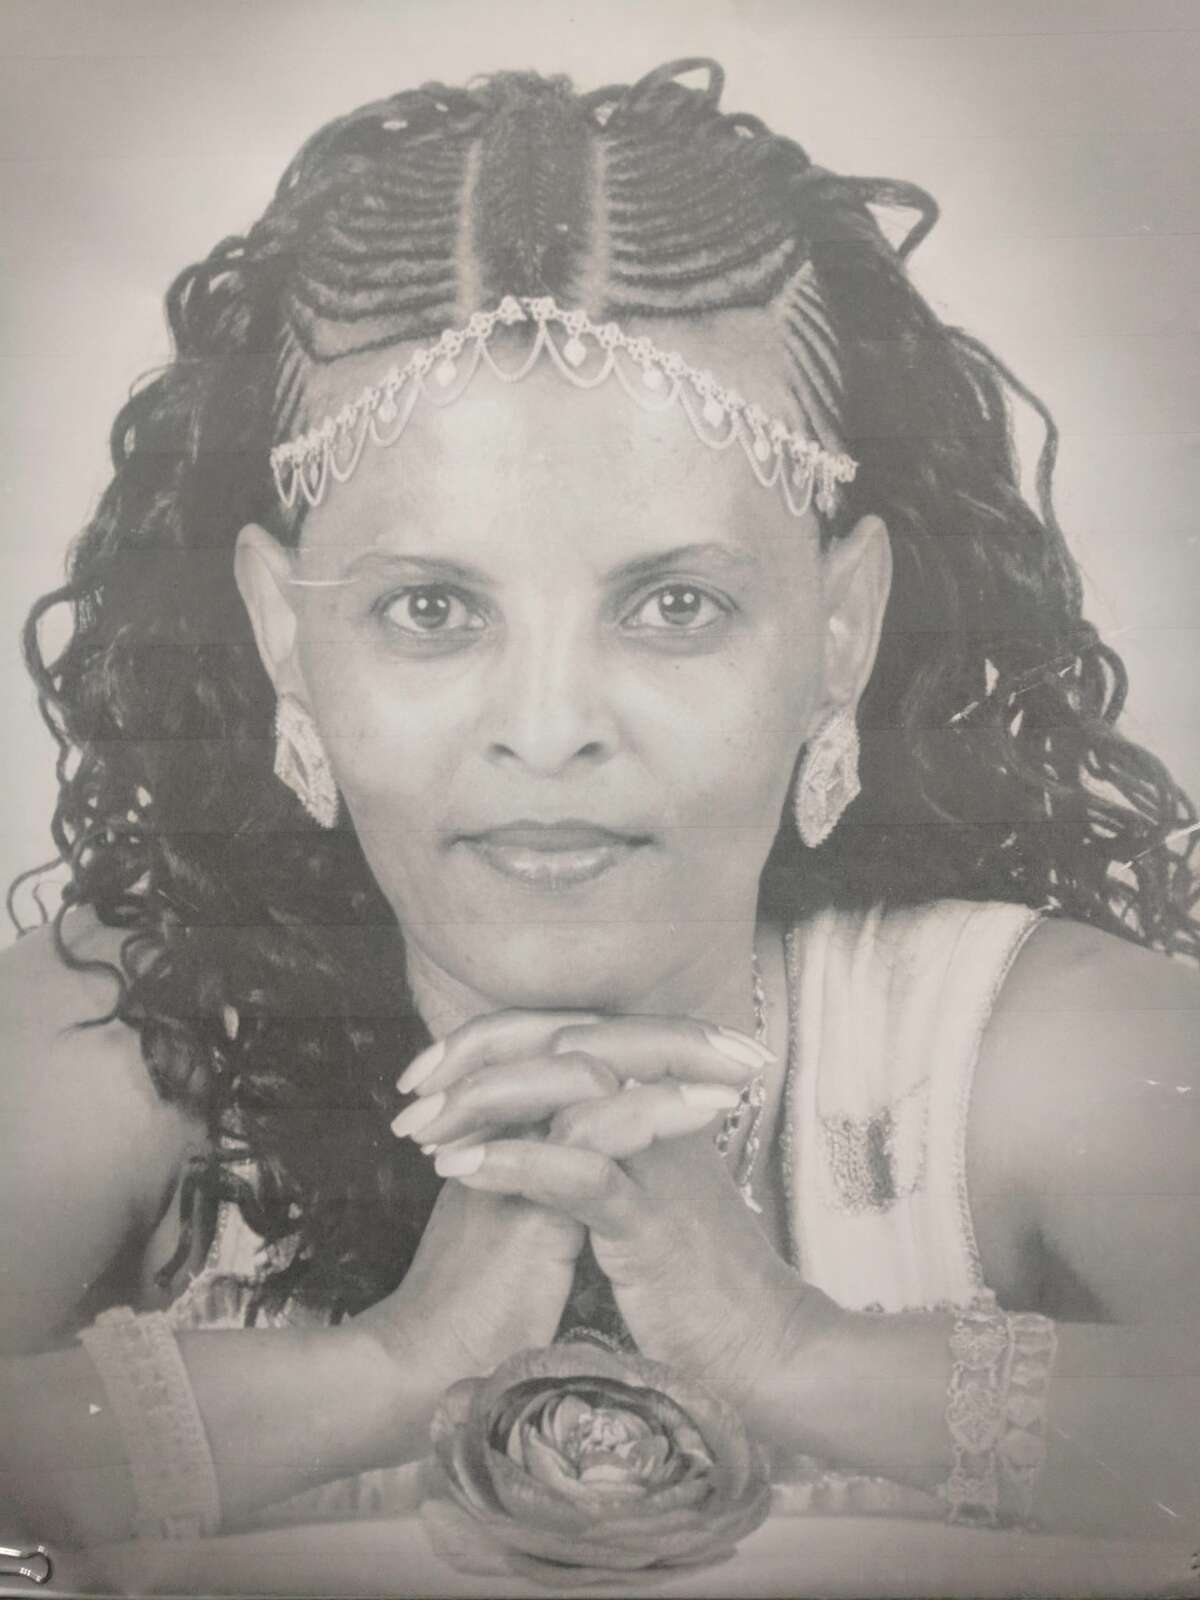 Tringo Ferede-Tesema's family posted photos of her at the sentencing of her husband, Aregay Tesfamariam, Friday in King County Superior Court in Kent. Tesfamariam fatally stabbed Ferede-Tesema in August 2017 at their Kent home, in front of their adult son and a passing mailman.